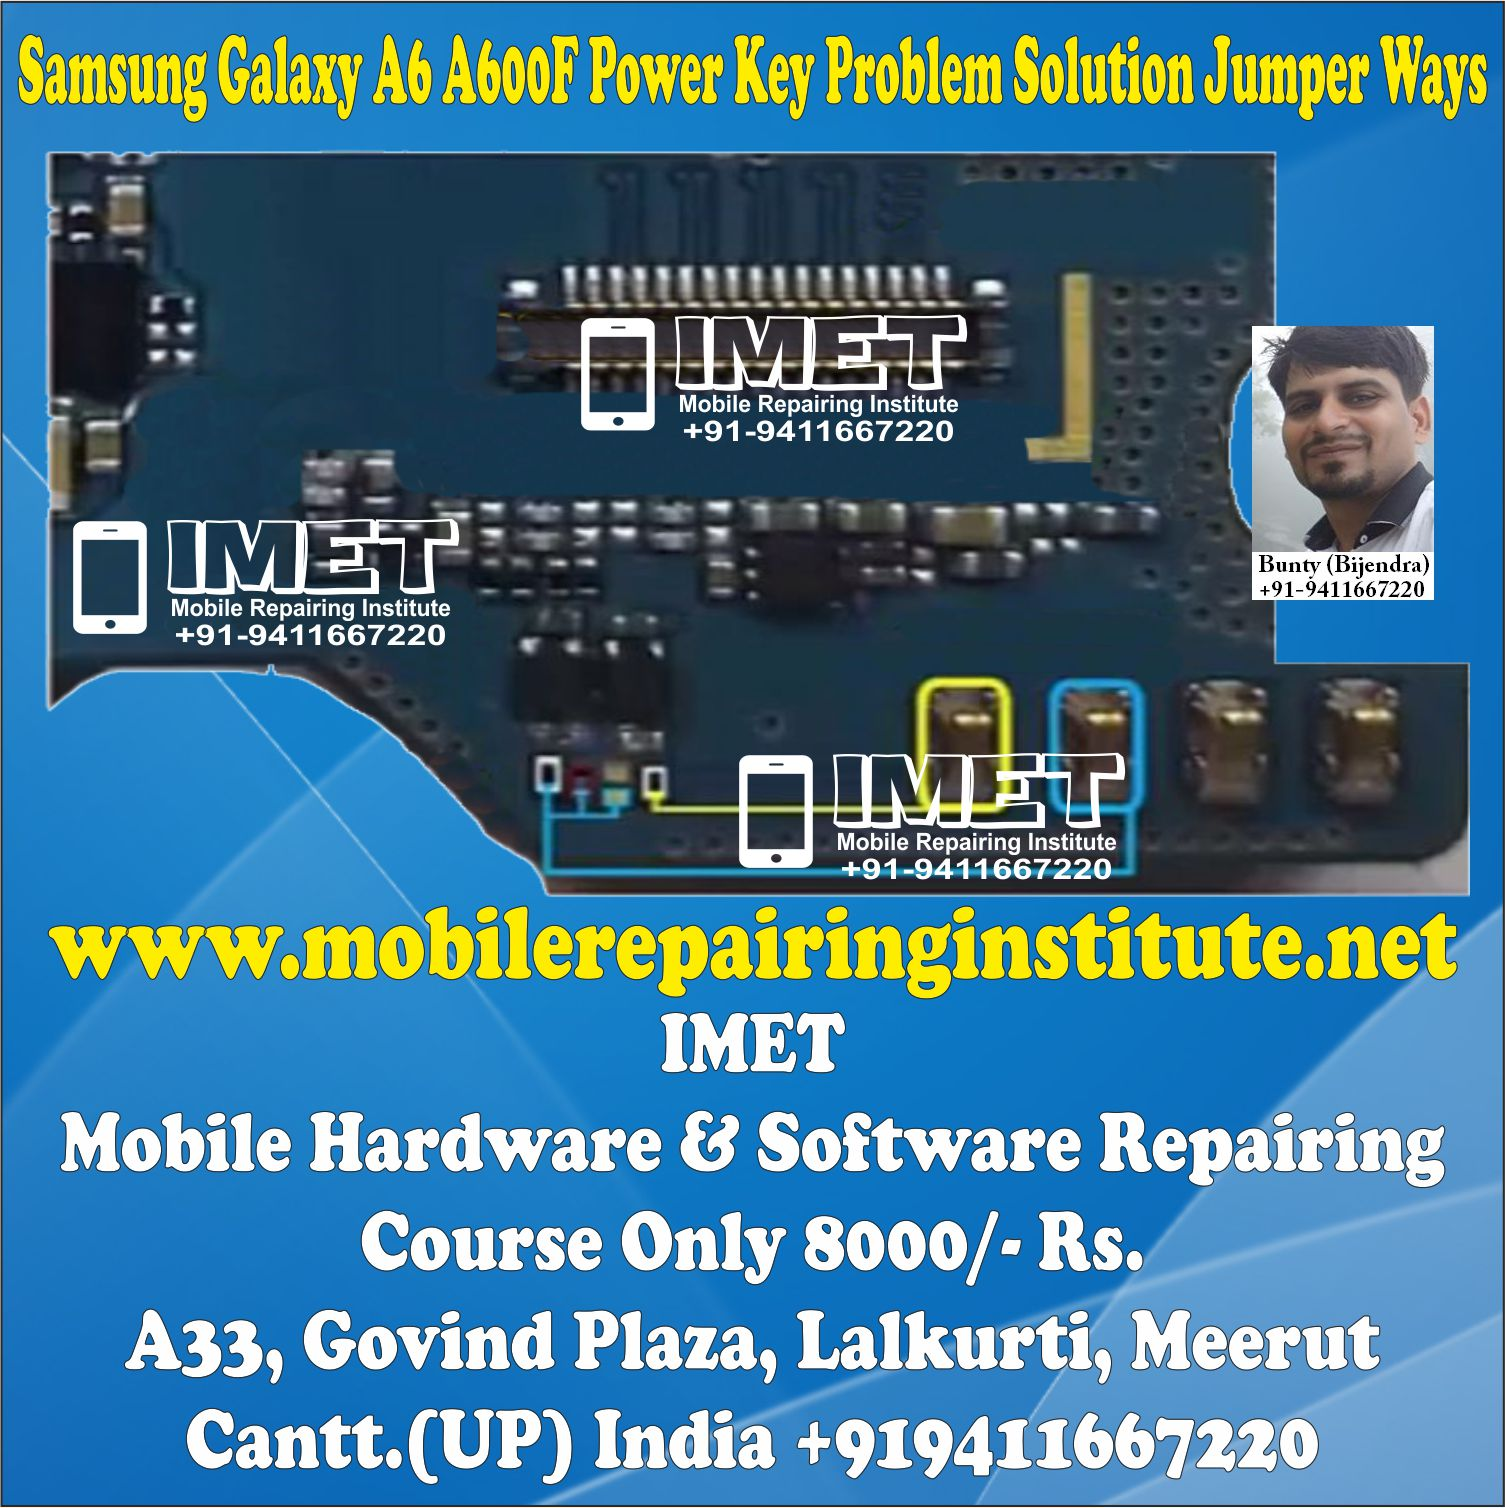 Samsung Galaxy A6 A600F Power Key Problem Solution Jumper Ways